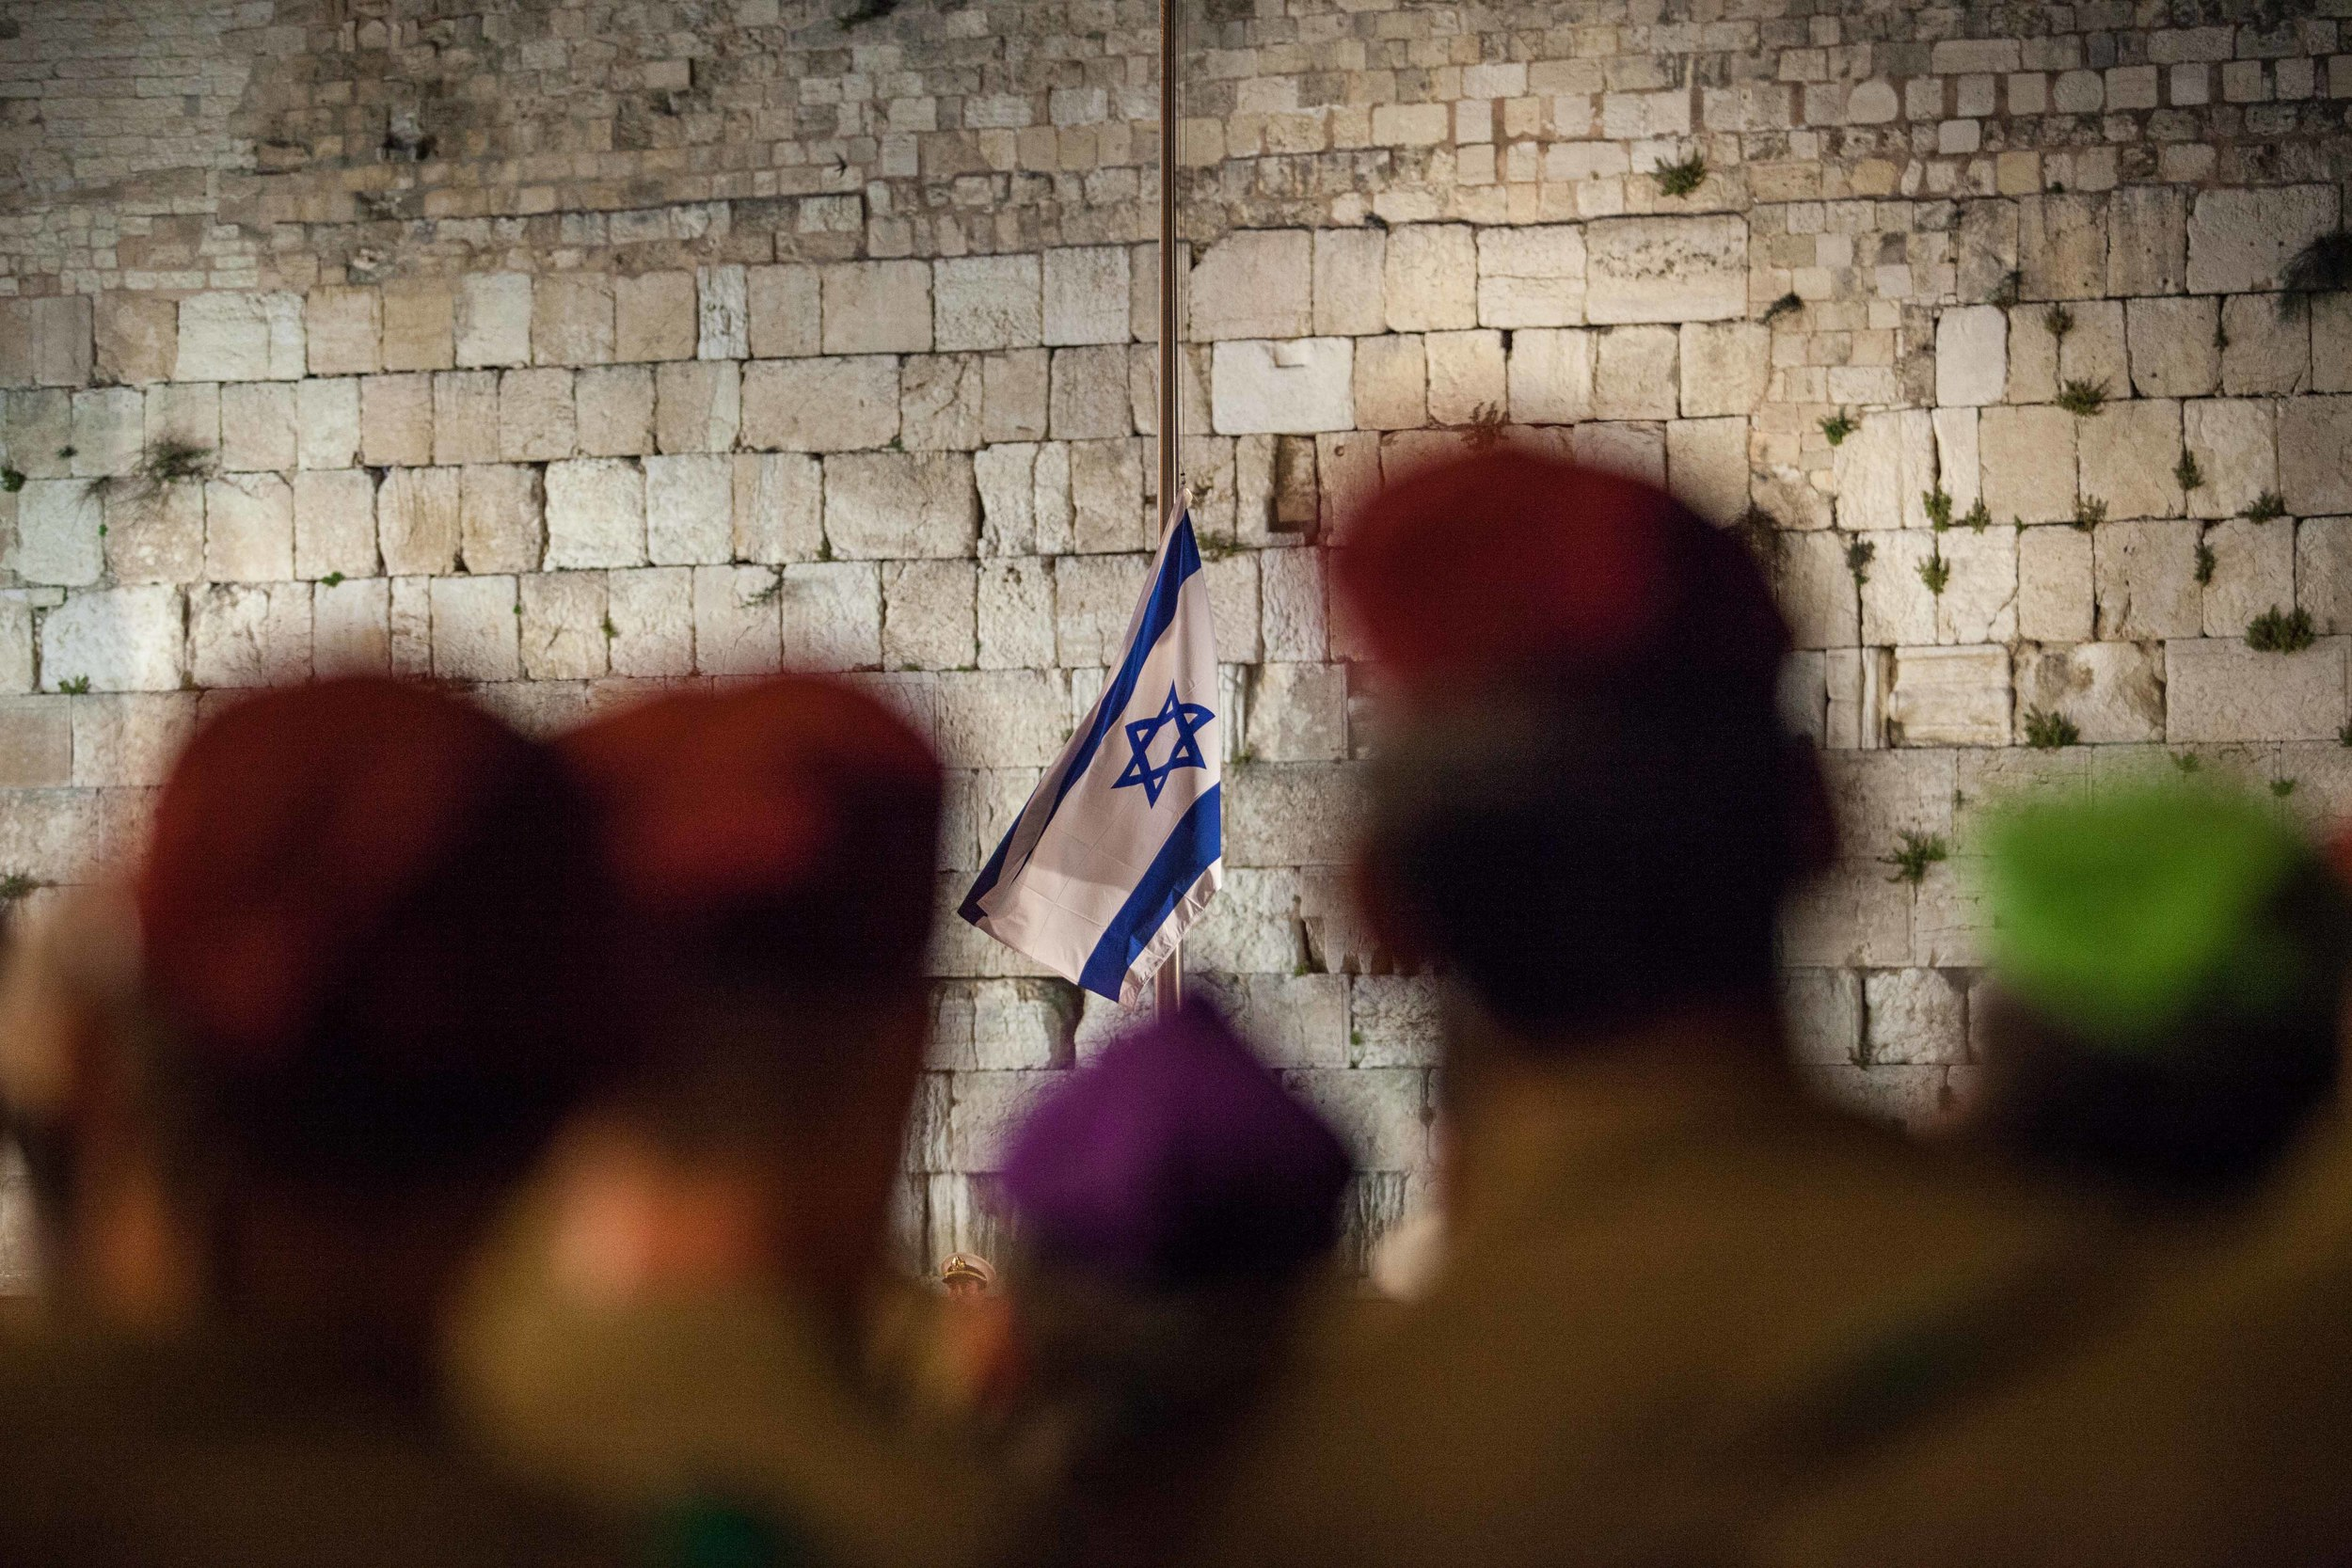 Annual ceremony on the night of Remembrance day at the Western Wall